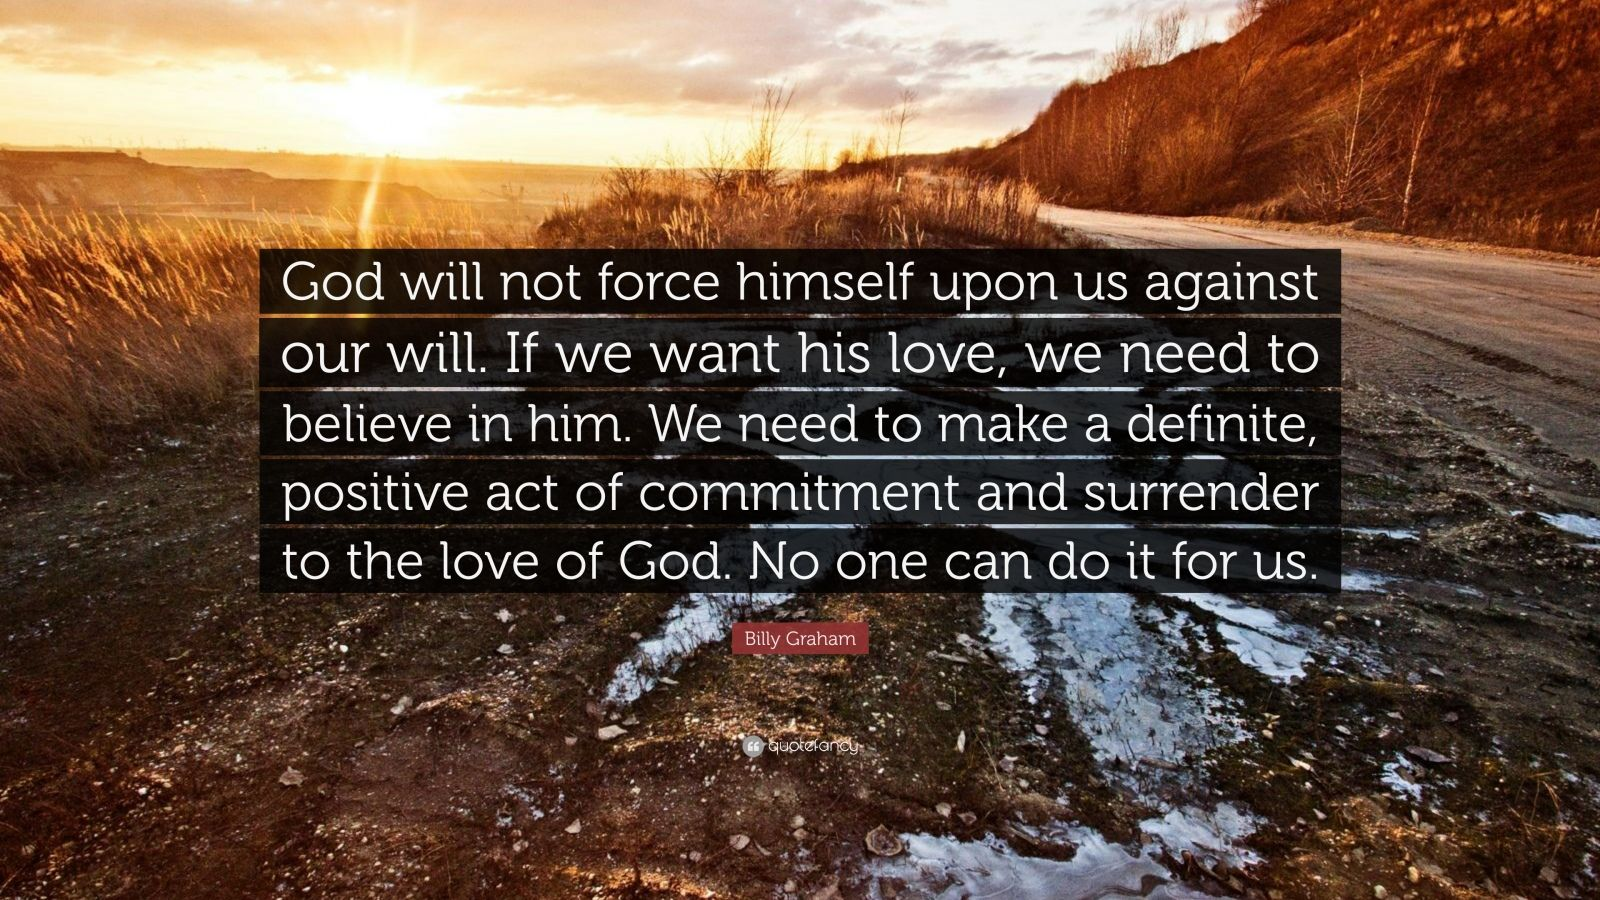 "Billy Graham Quote: ""God will not force himself upon us against our will. If we want his love, we need to believe in him. We need to make a definite, positive act of commitment and surrender to the love of God. No one can do it for us."""